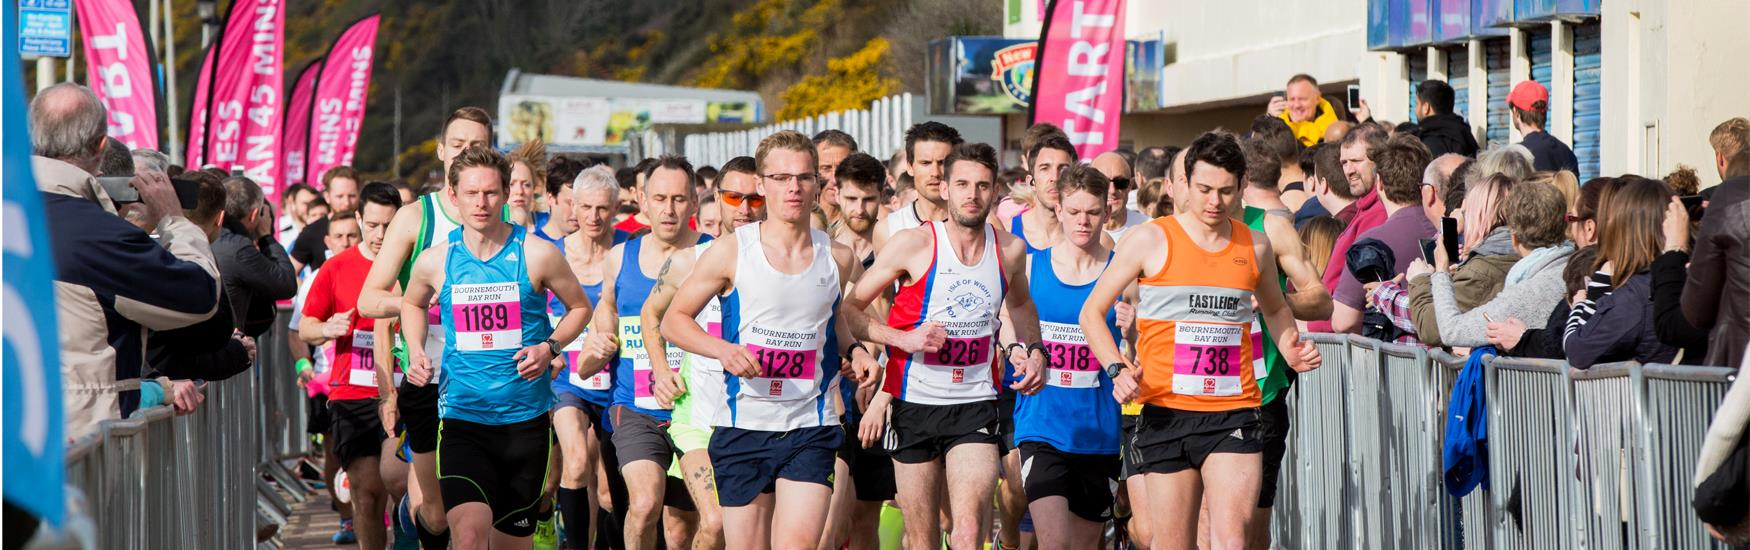 Super sports events this year such as the Bournemouth Bay Run